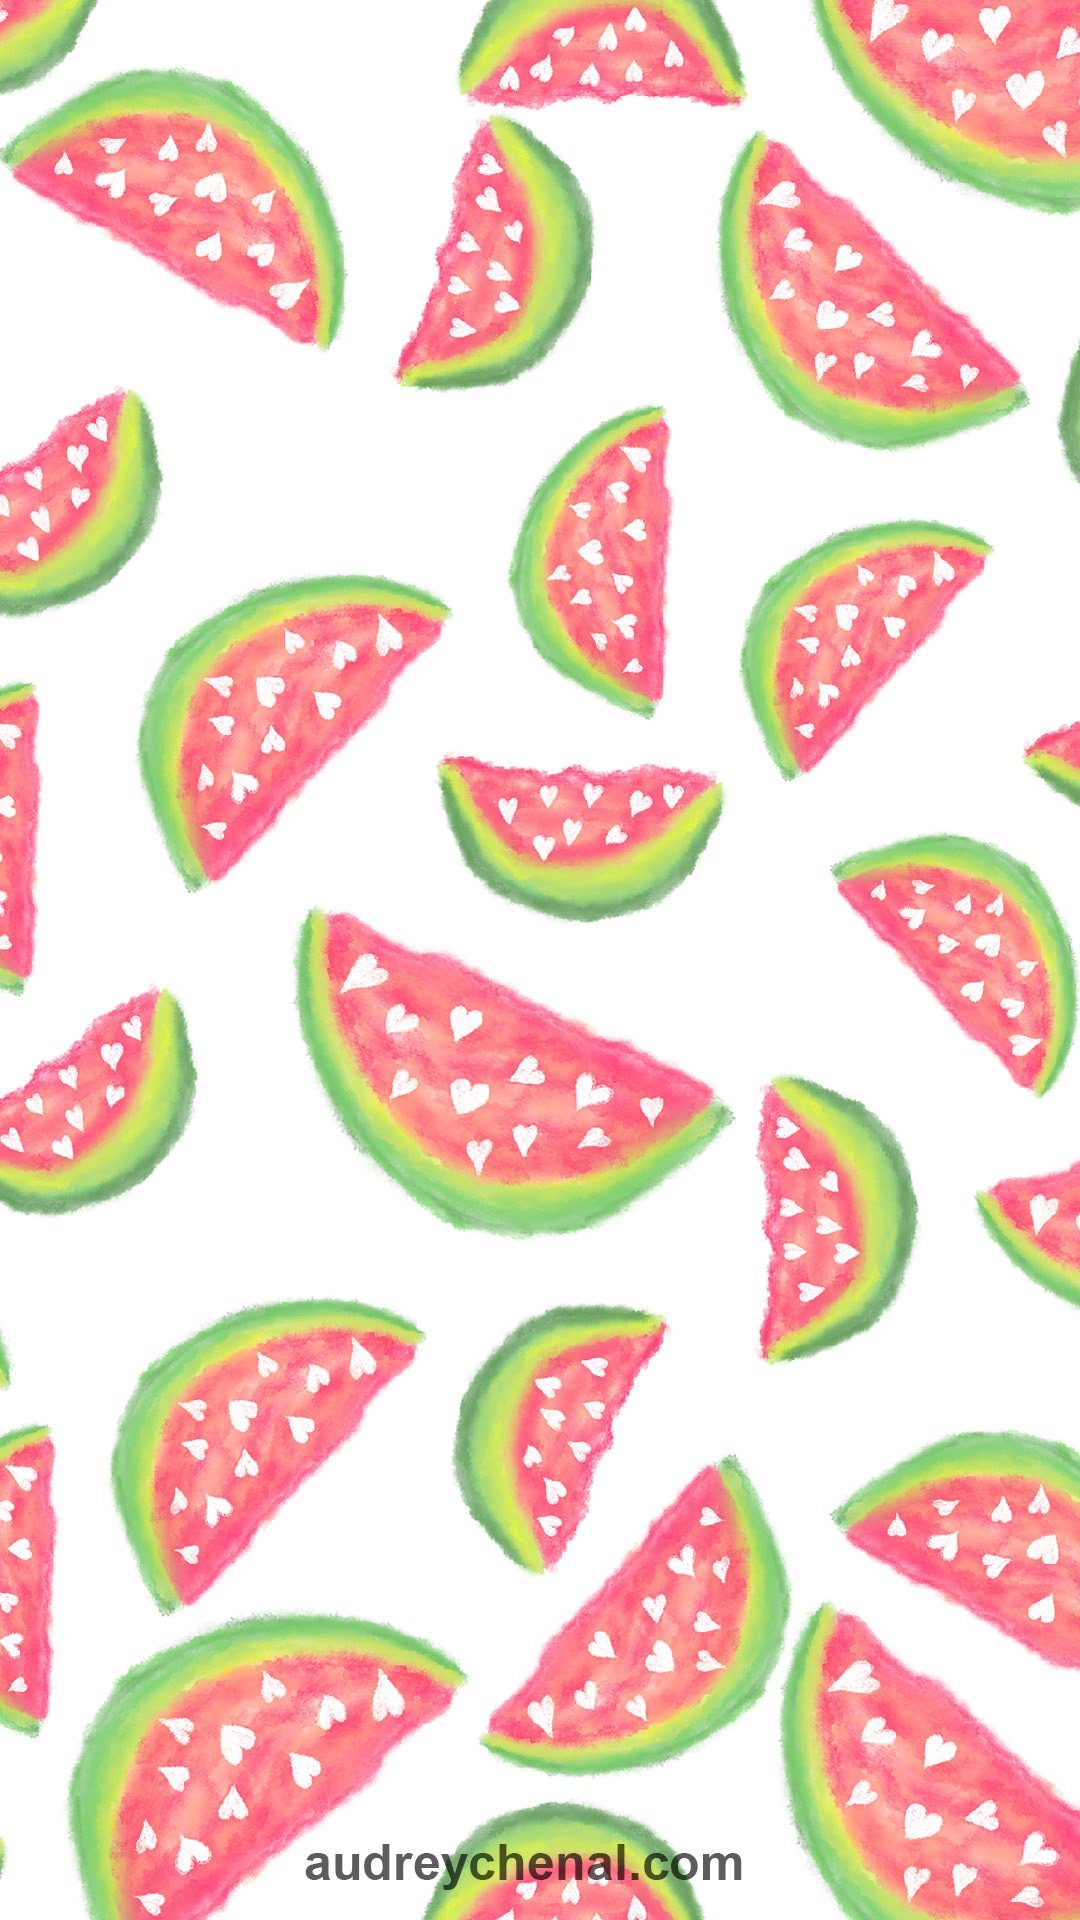 Summer hand painted pink teal watercolor watermelons fruits and hearts pattern wallpaper by Audrey Chenal